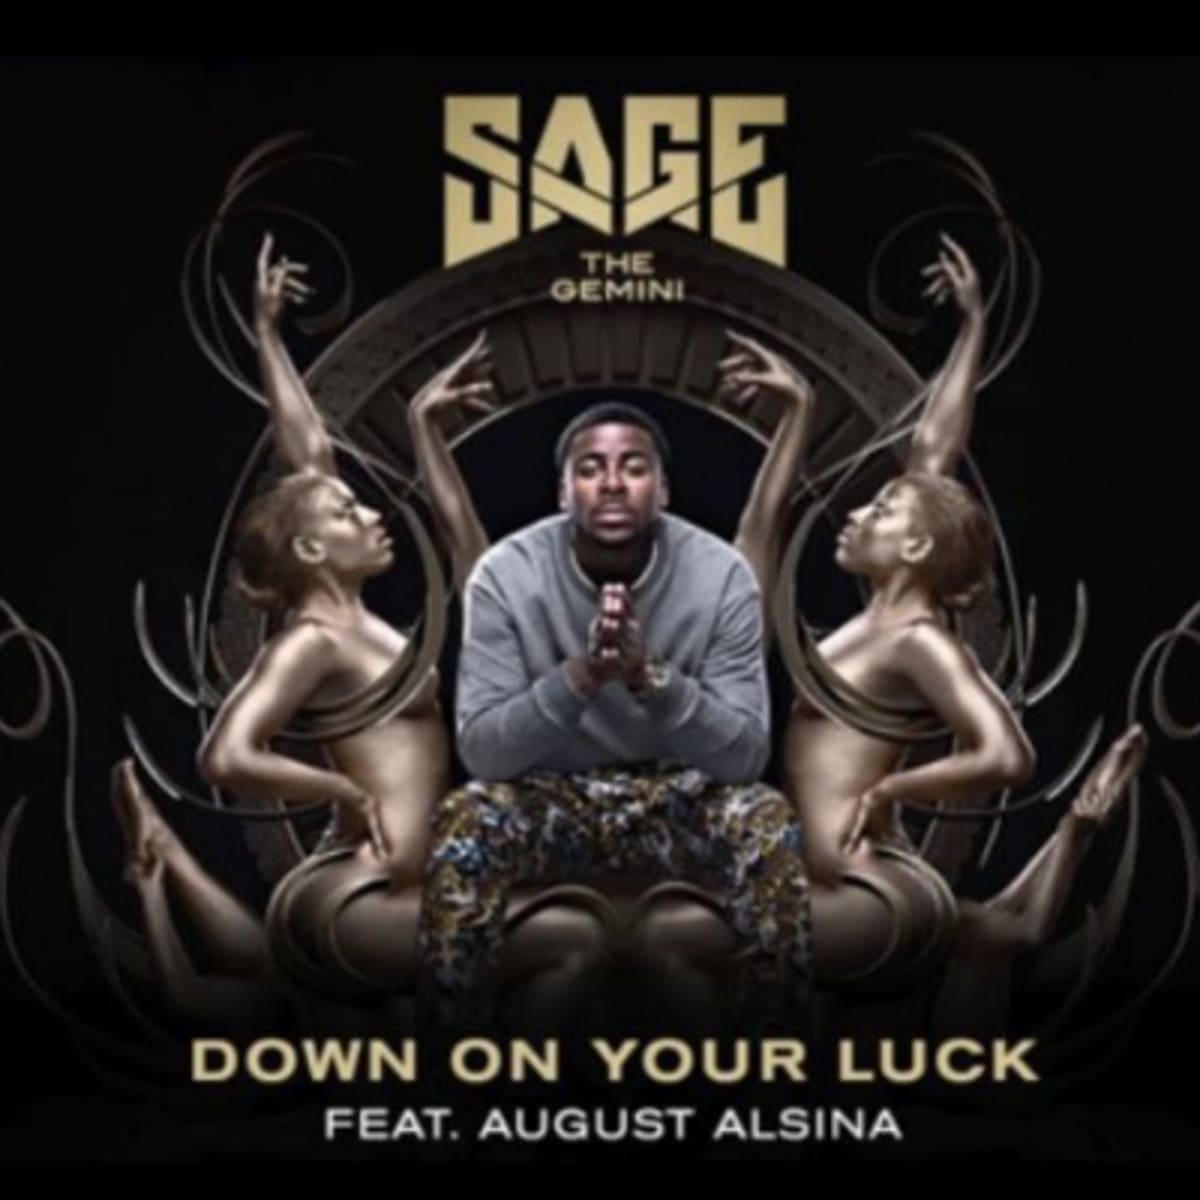 Sage The Gemini Links Up With August Alsina On Down On Your Luck